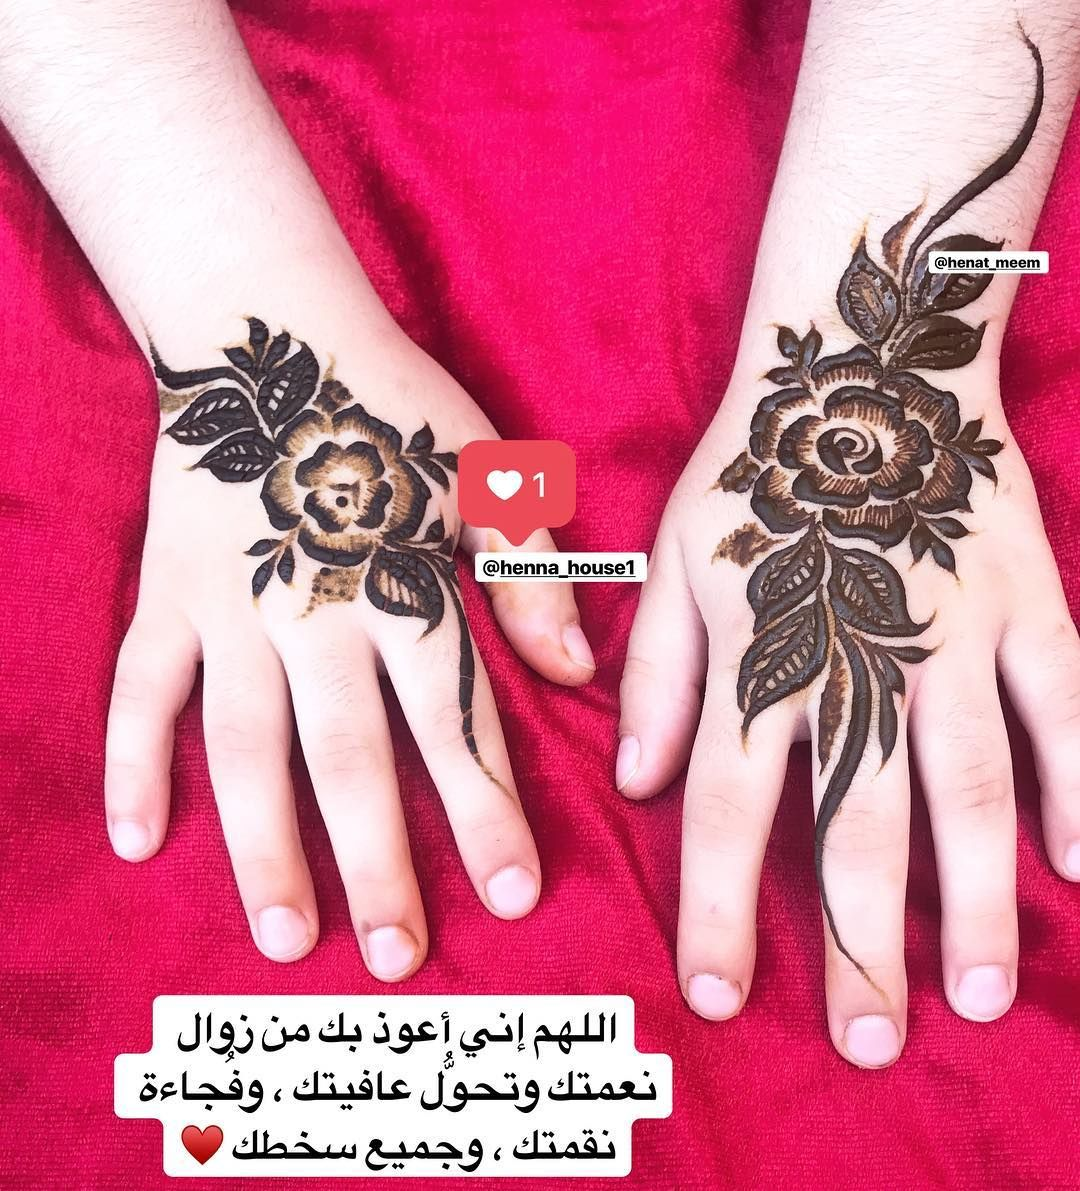 Image May Contain One Or More People And Text Henna Designs Hand Henna Designs Henna Hand Tattoo